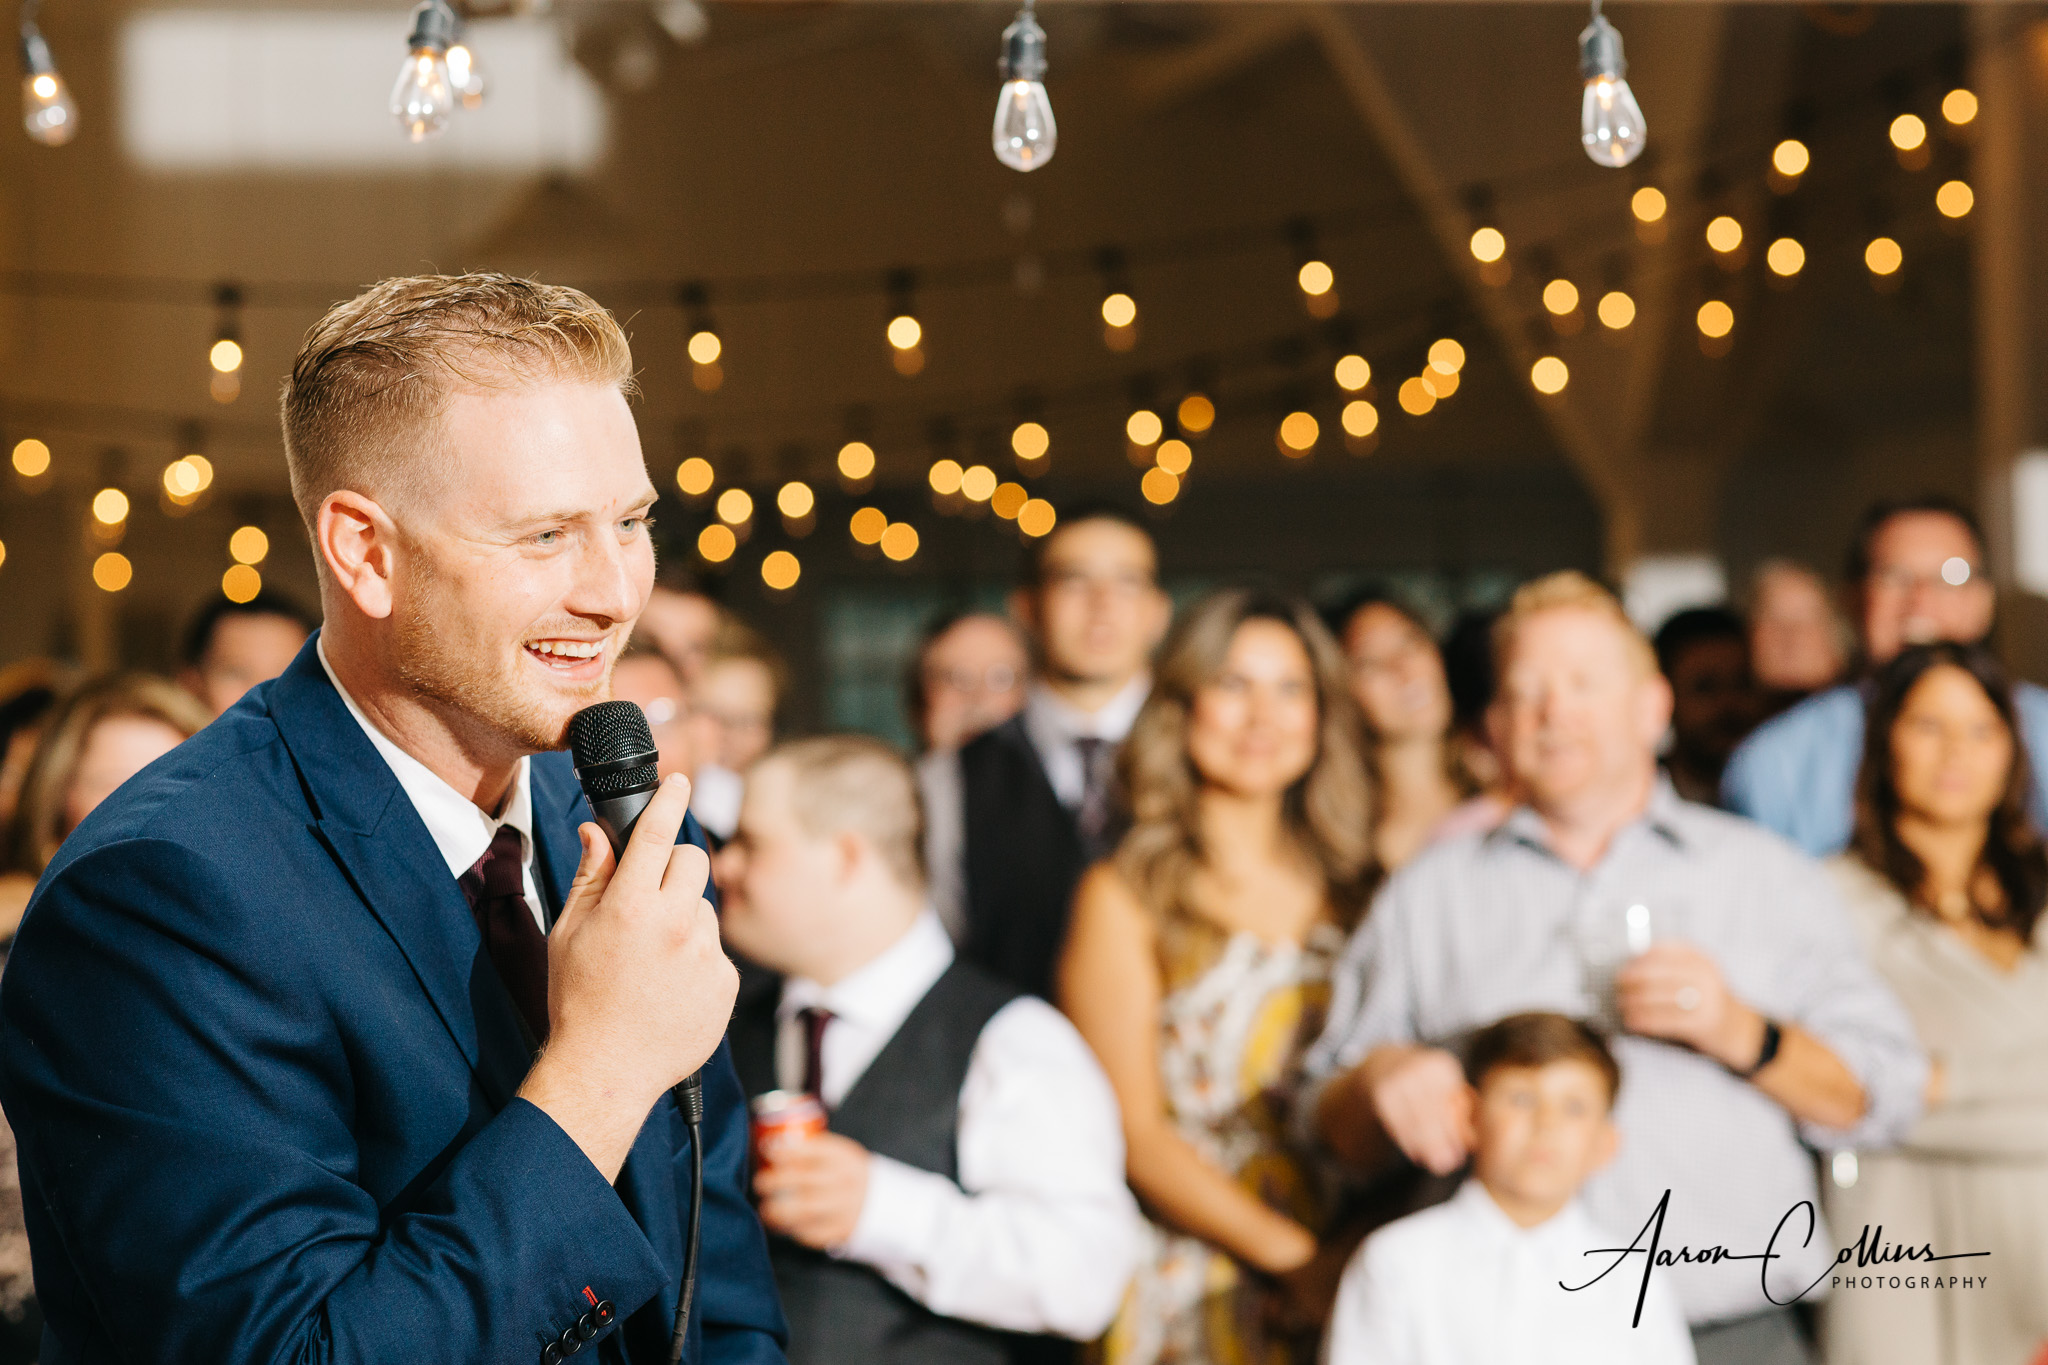 Best man giving the speech at Block Island Maritime Institute with bokeh visible in the lighting hanging in the background